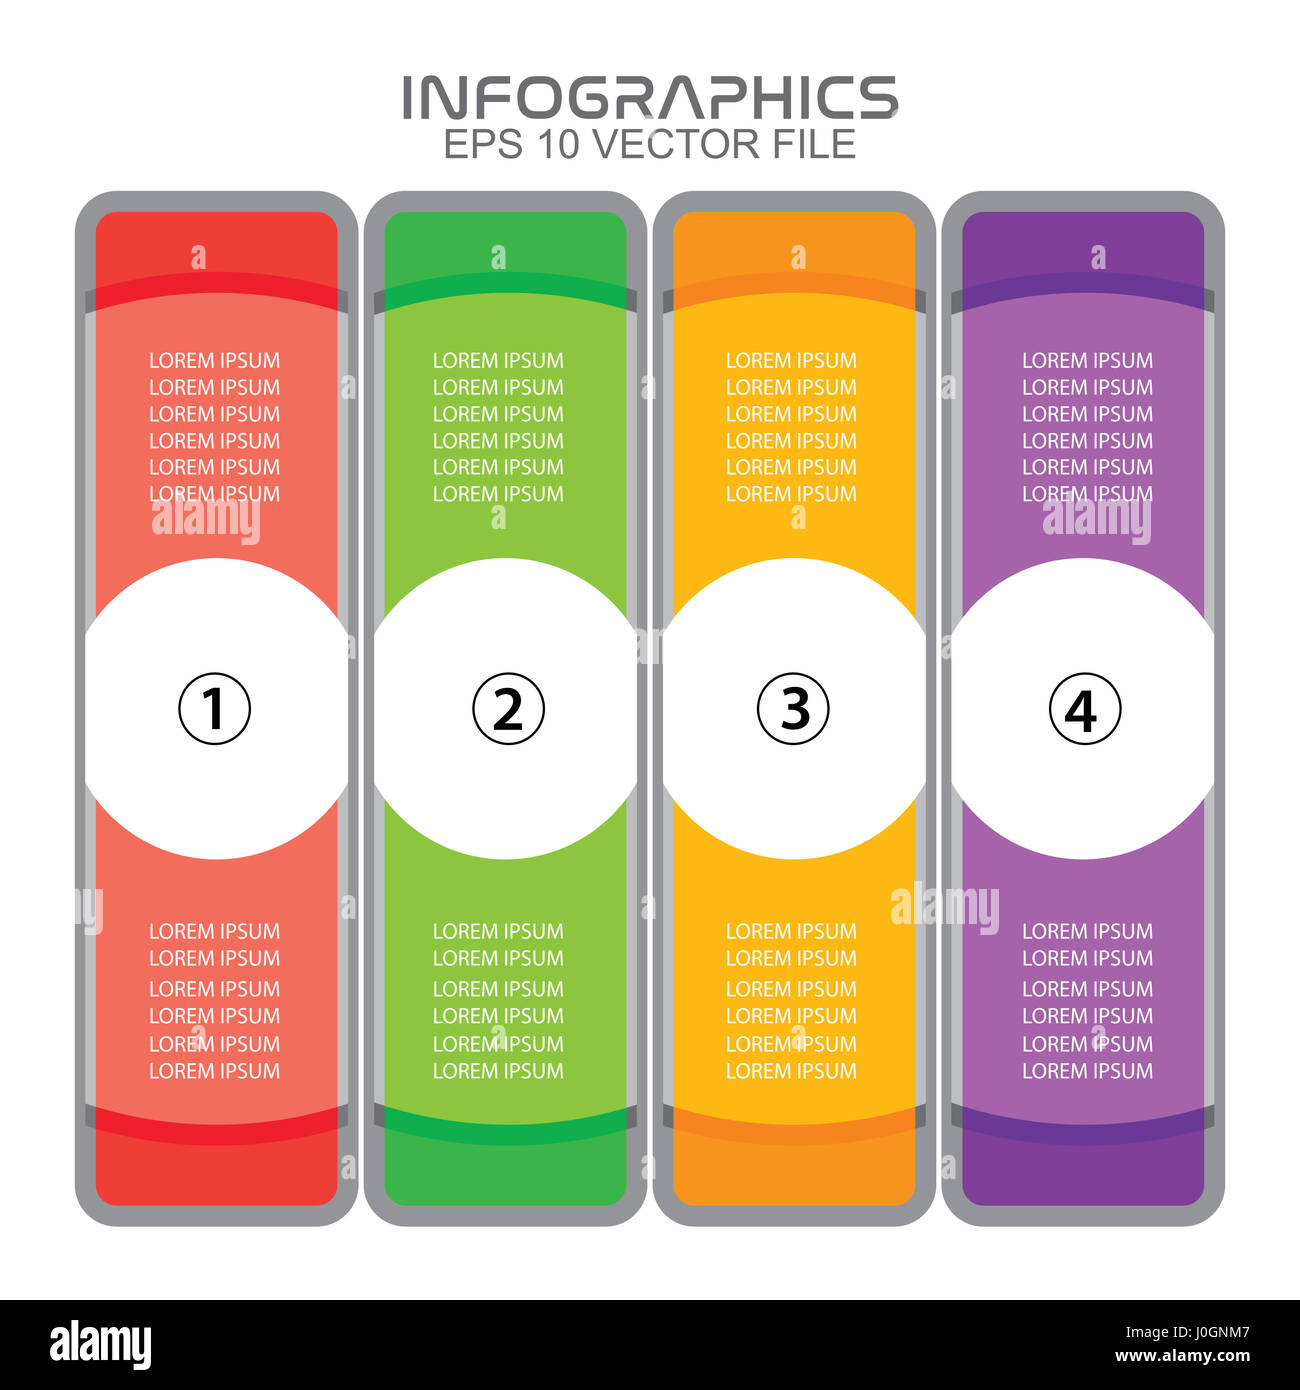 Template vector infographic business step banner layout template vector infographic business step banner layout presentation diagram abstract symbol data 4 chart information background illus biocorpaavc